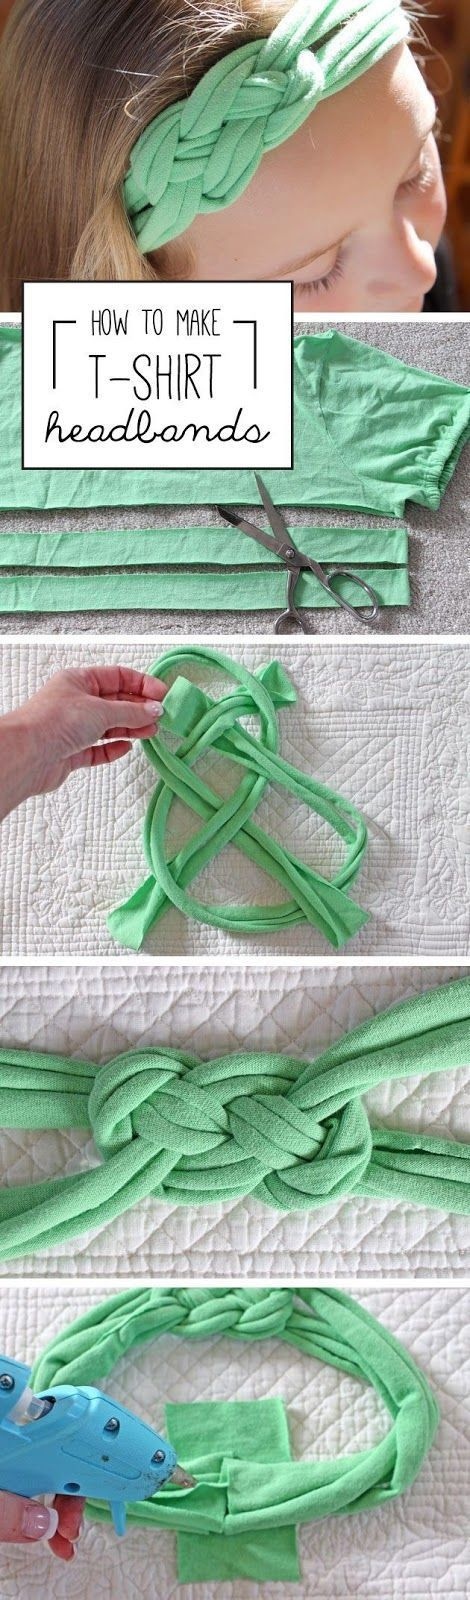 Craft Project Ideas: How to Make Headbands Out of Shirts: